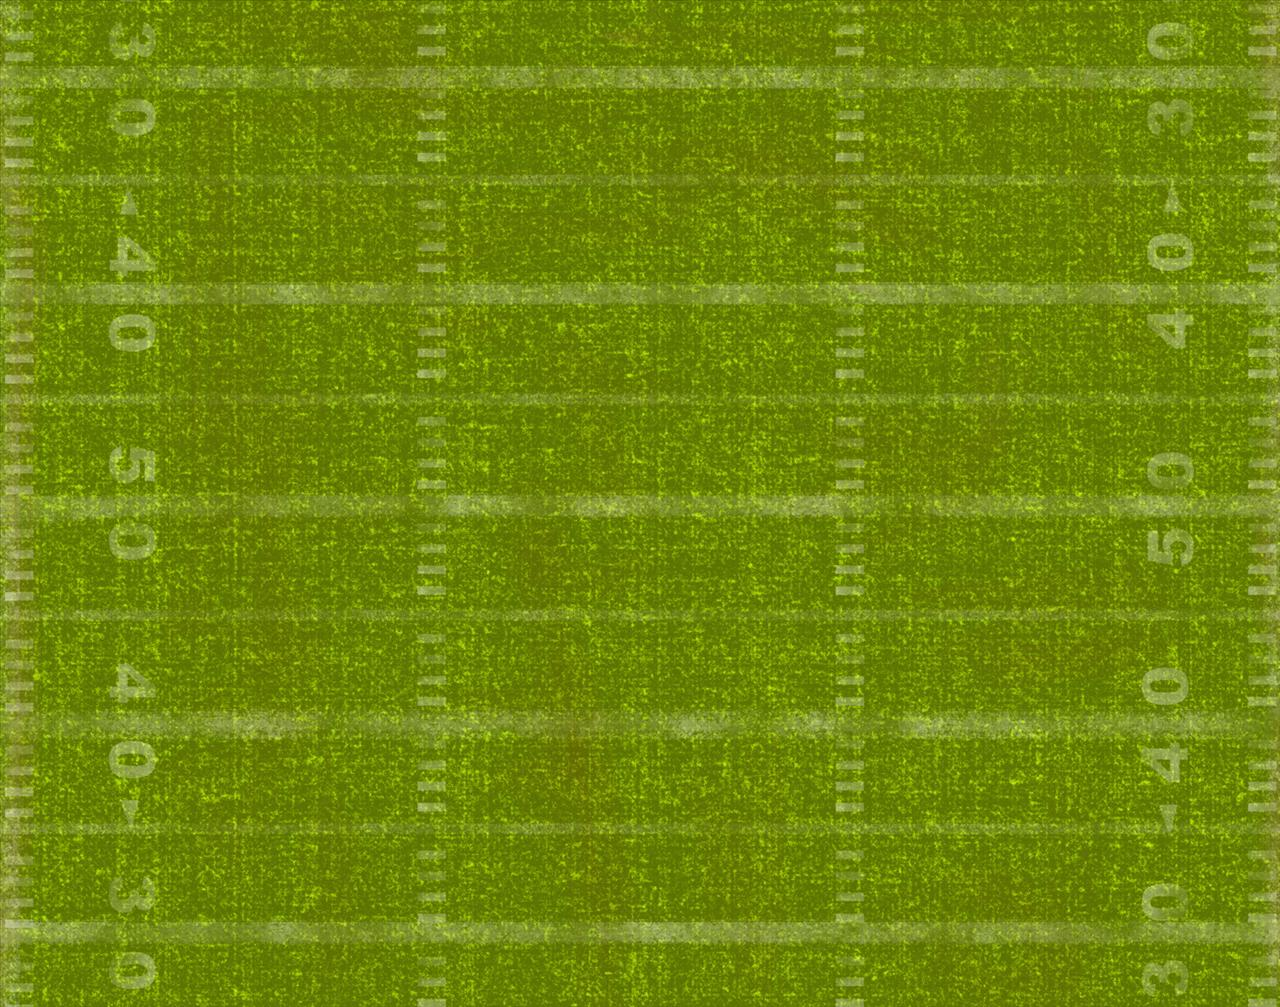 Free Download Football Backgrounds For Powerpoint Sports Ppt